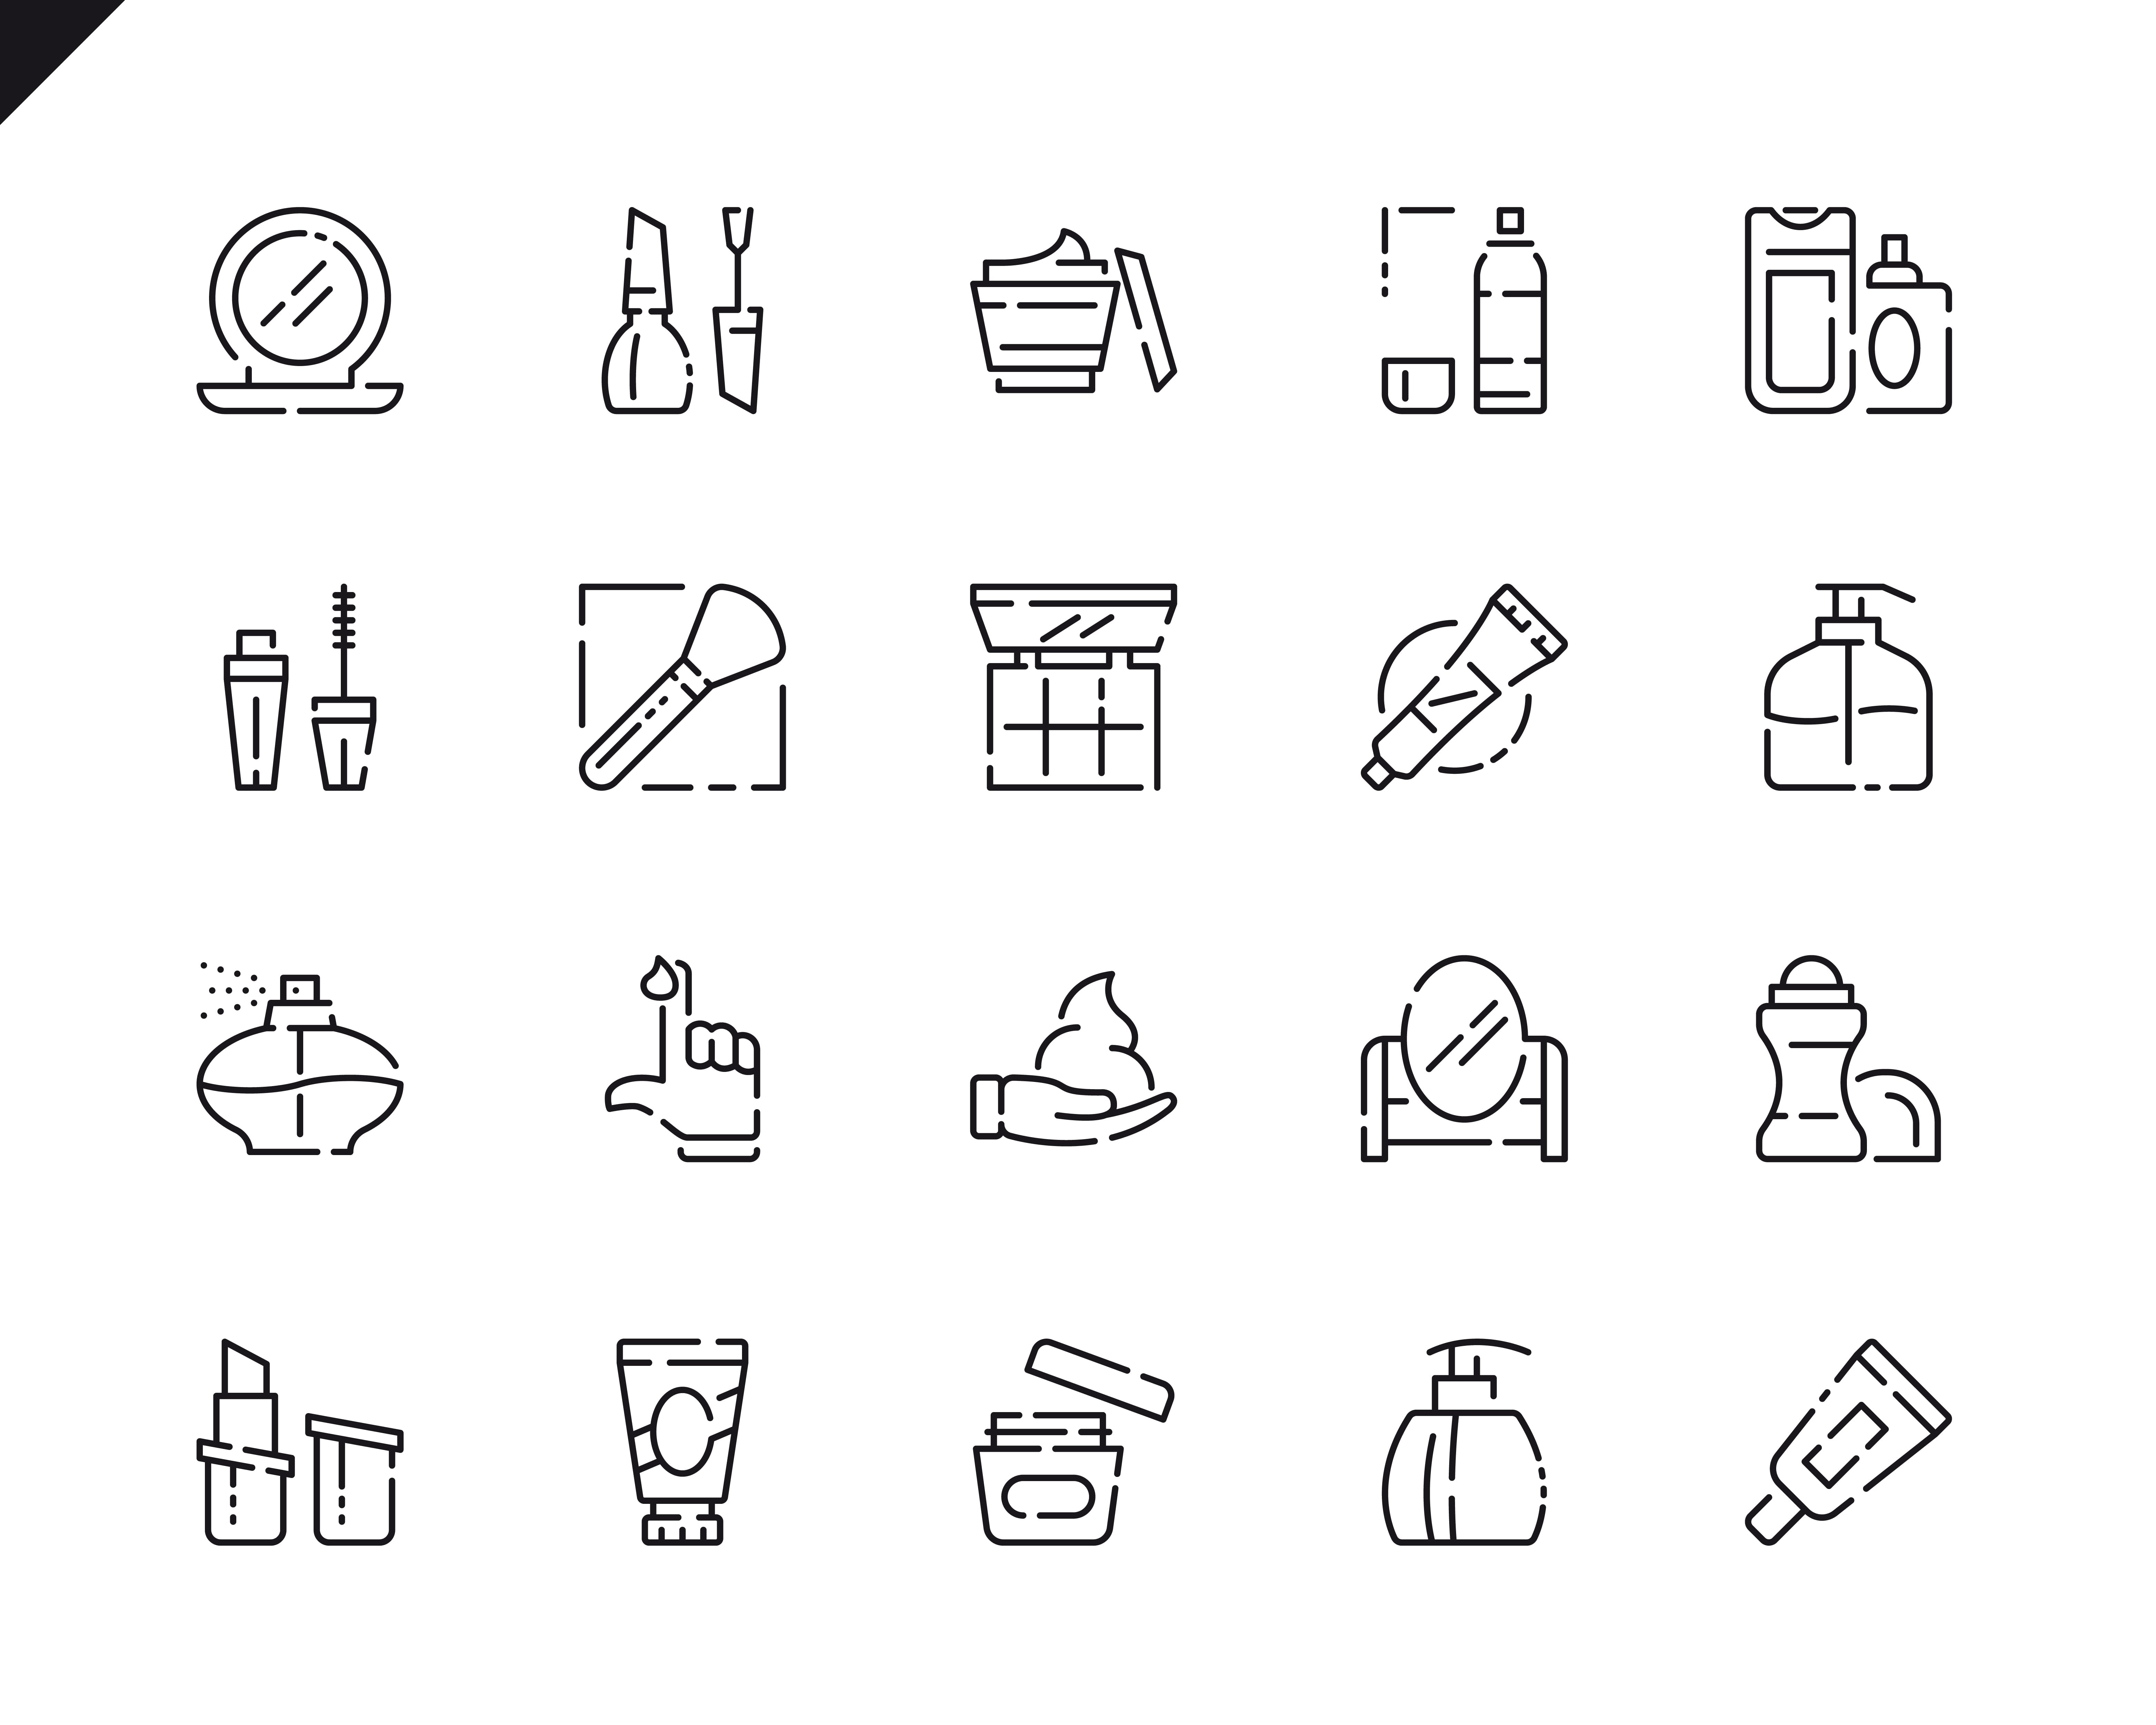 500 Business Line Icons - $22 ONLY - 5 5